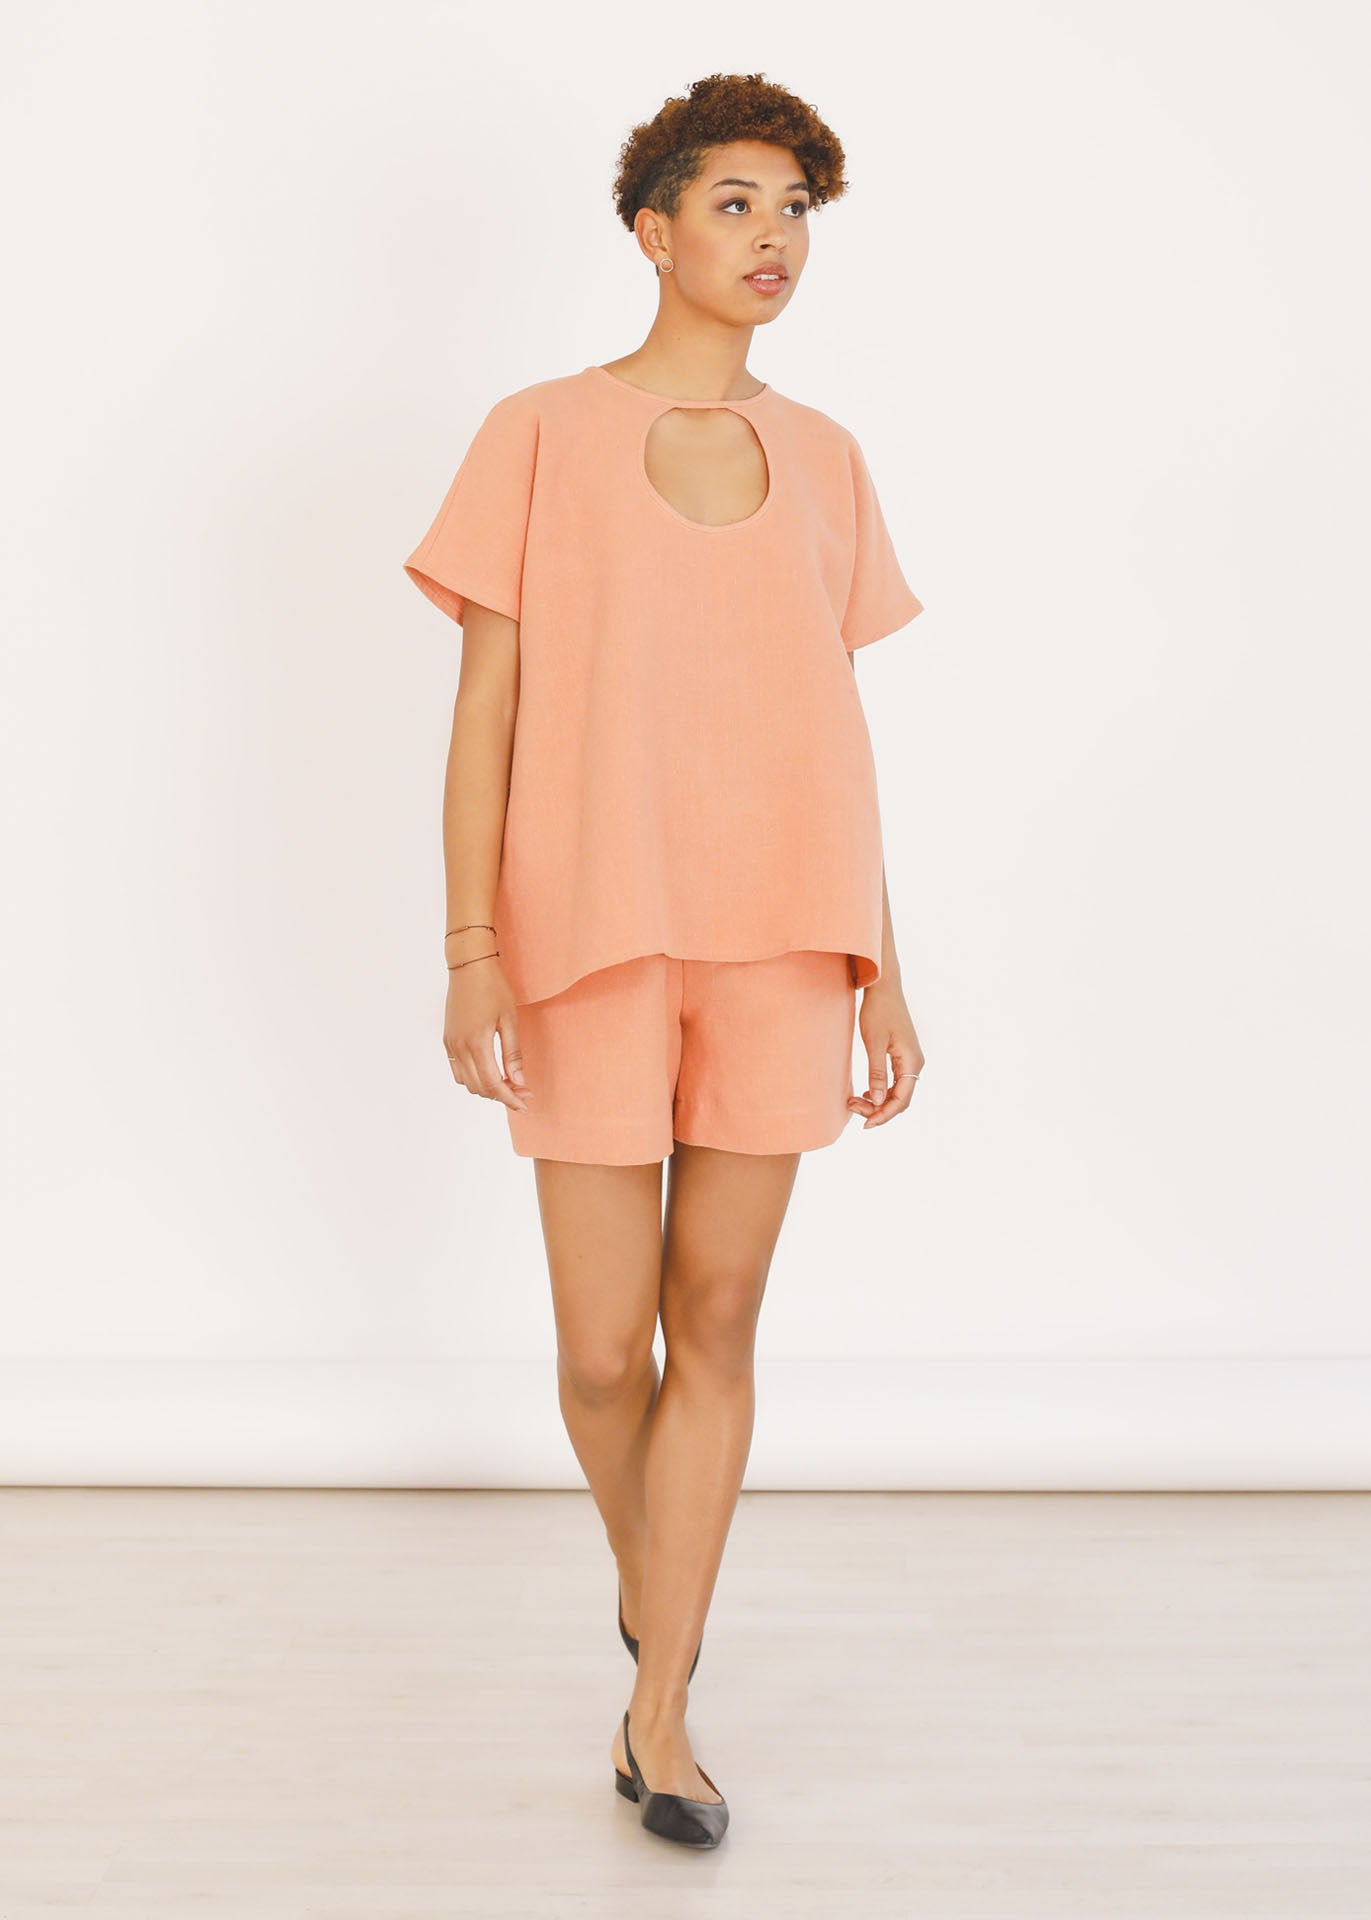 Siena - Cut-out Top